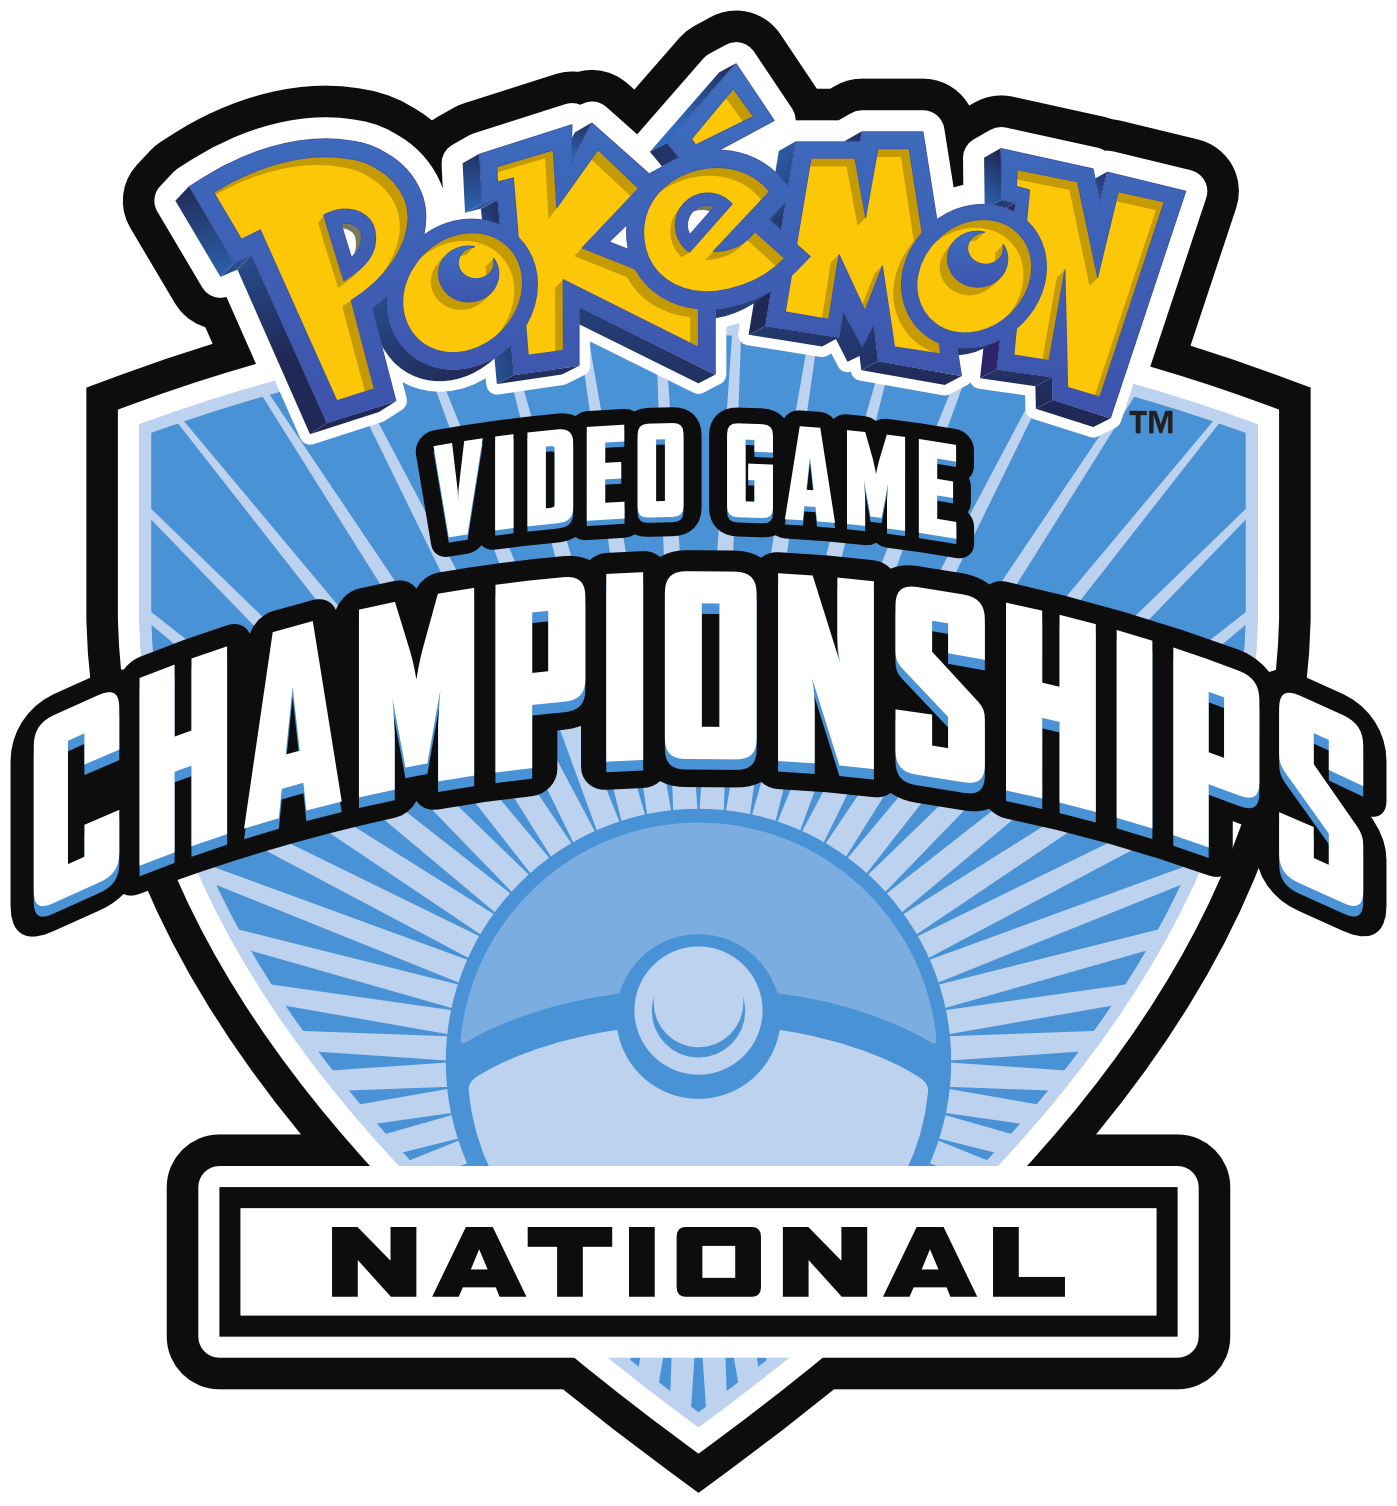 2013 Pokemon U.S. National  championship showcase top Pokemon competitors, bring thousands to Indianapolis